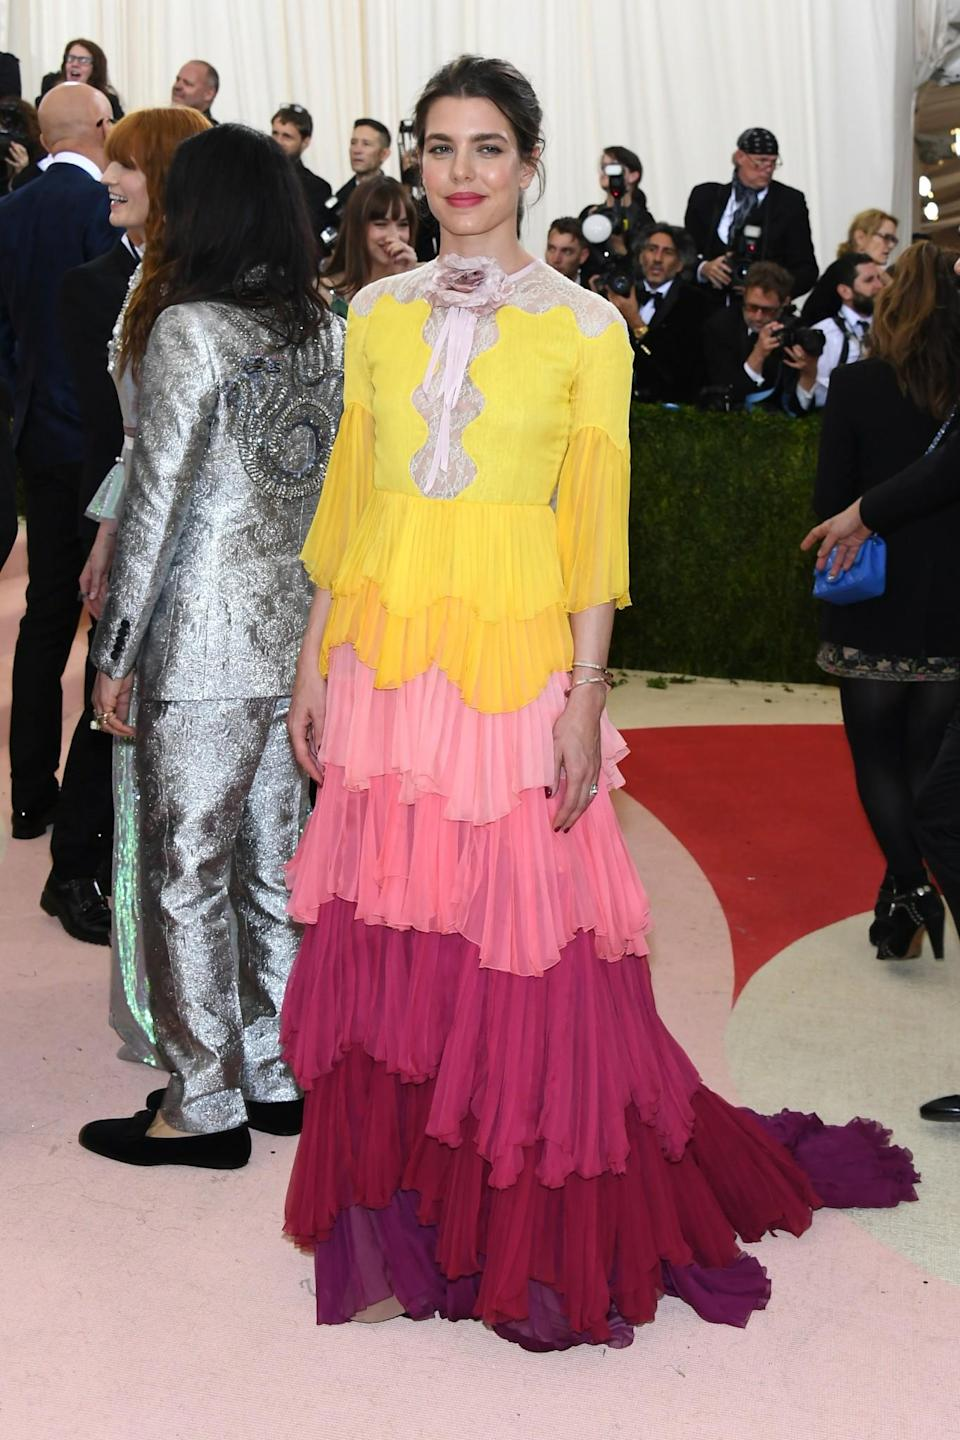 <p>Charlotte has style running through her blood. She is the granddaughter of Grace Kelly (and therefore a Princess of Monaco) and can often be seen on red carpets including the infamous Met Gala. Last year, she attended on the arm of Gucci's Alessandro Michele wearing an extremely daring gown; something that is a regular for the royal. <i>[Photo: Getty]</i> </p>